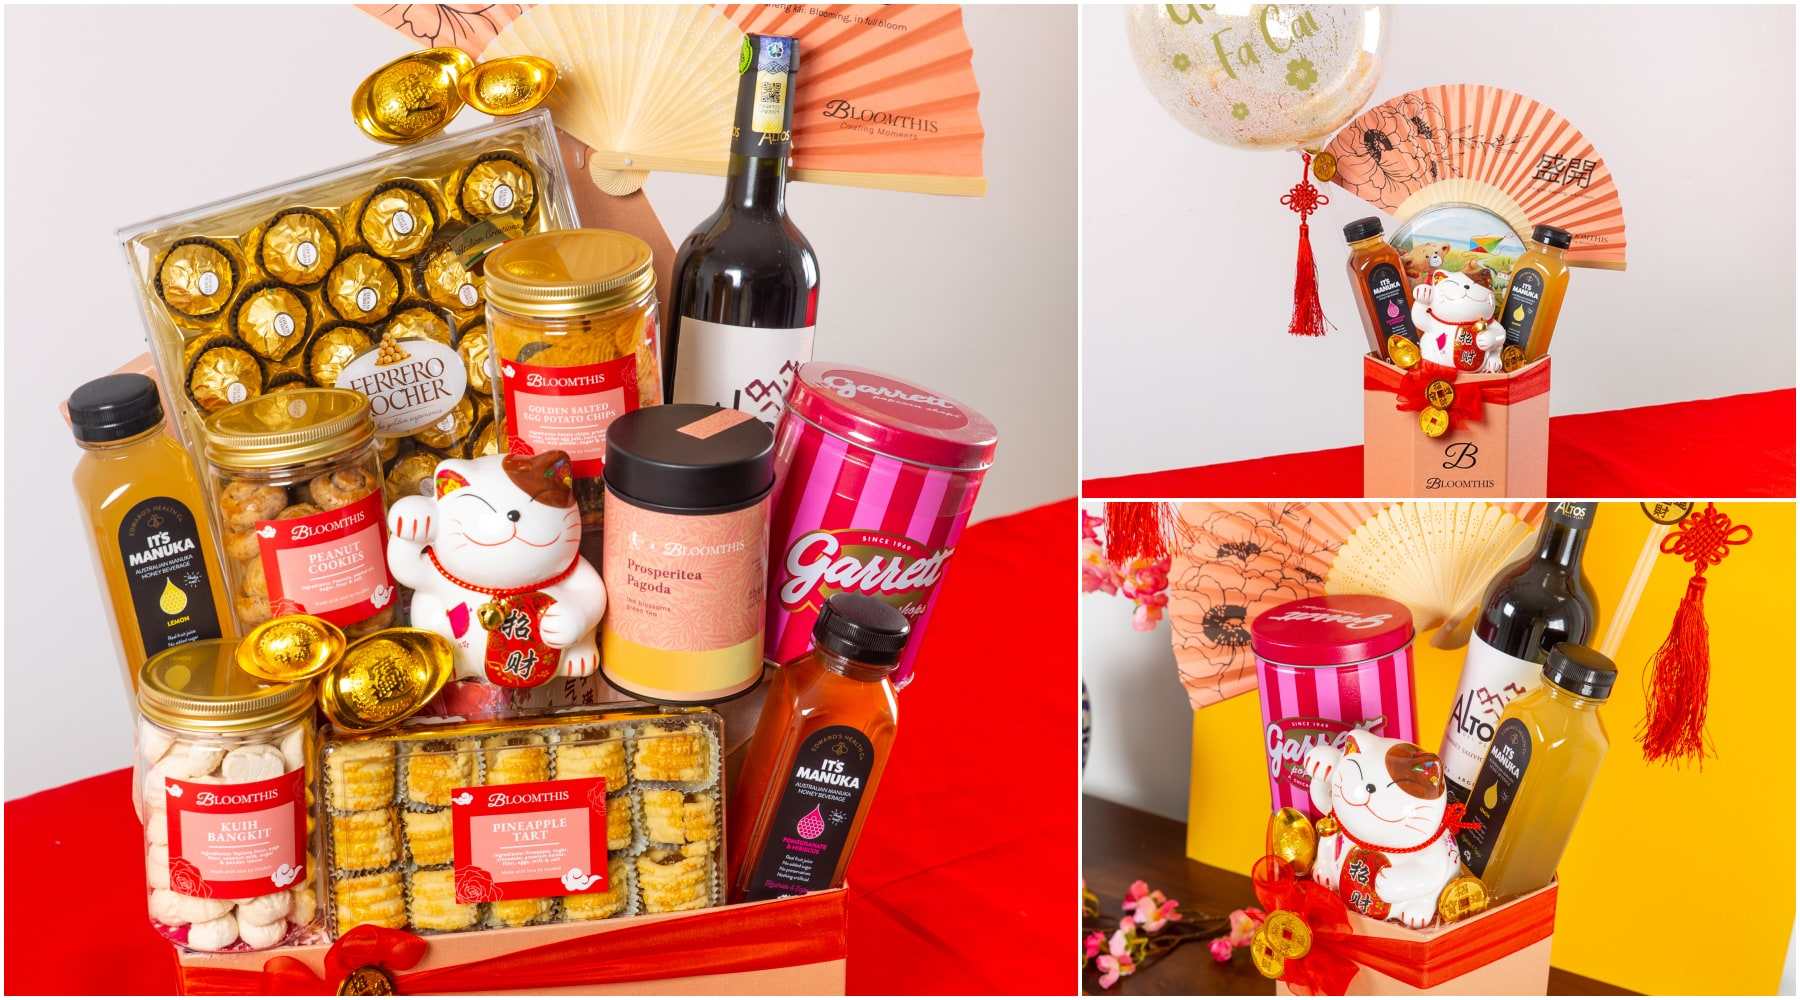 bloomthis-chinese-new-year-gift-guide-chinese-new-year-hamper-food-snack-gourmet-cny-snack-cookies